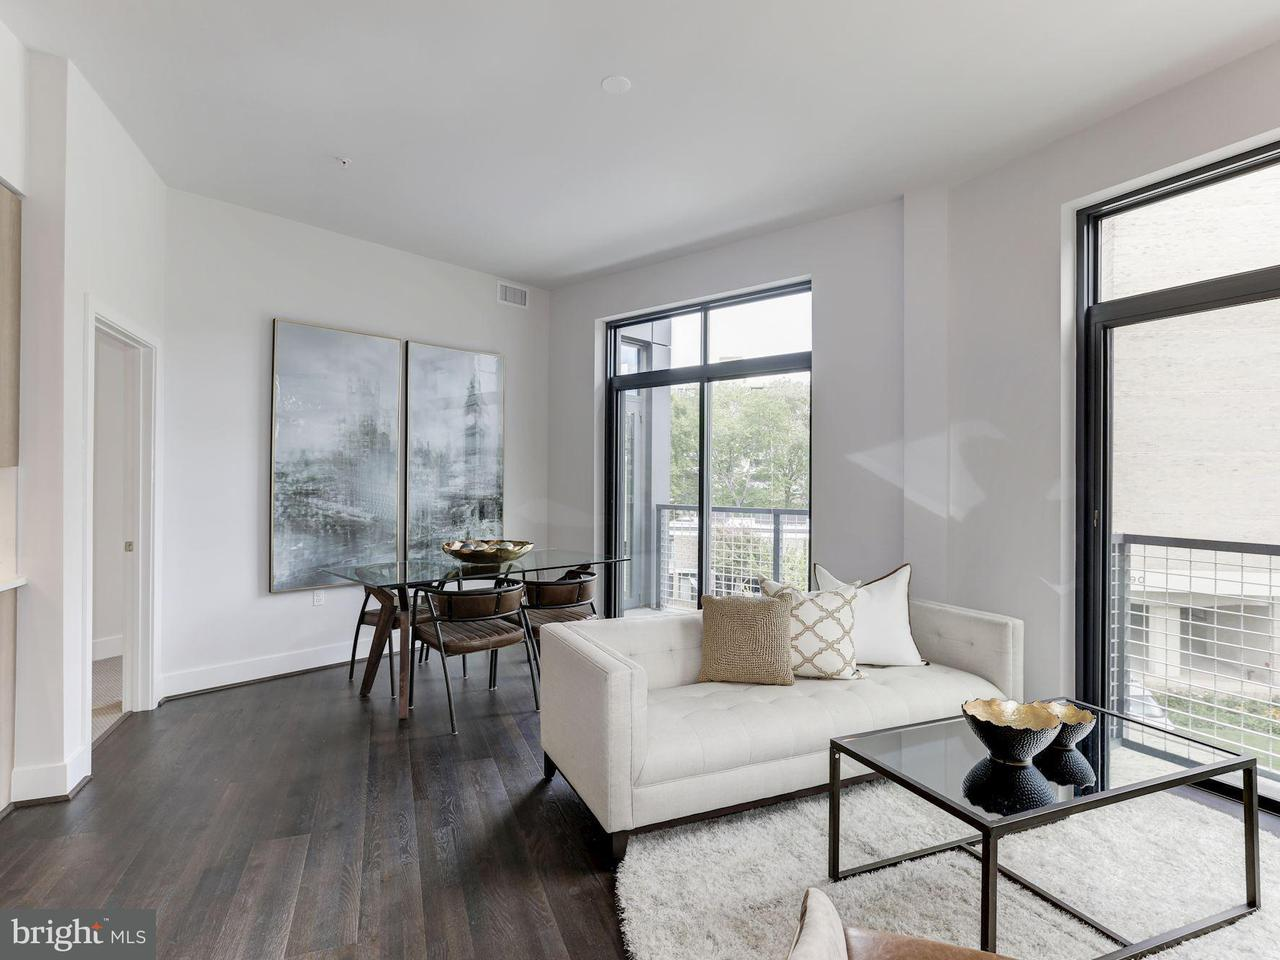 Additional photo for property listing at 525 WATER ST SW #420 525 WATER ST SW #420 Washington, 哥倫比亞特區 20024 美國